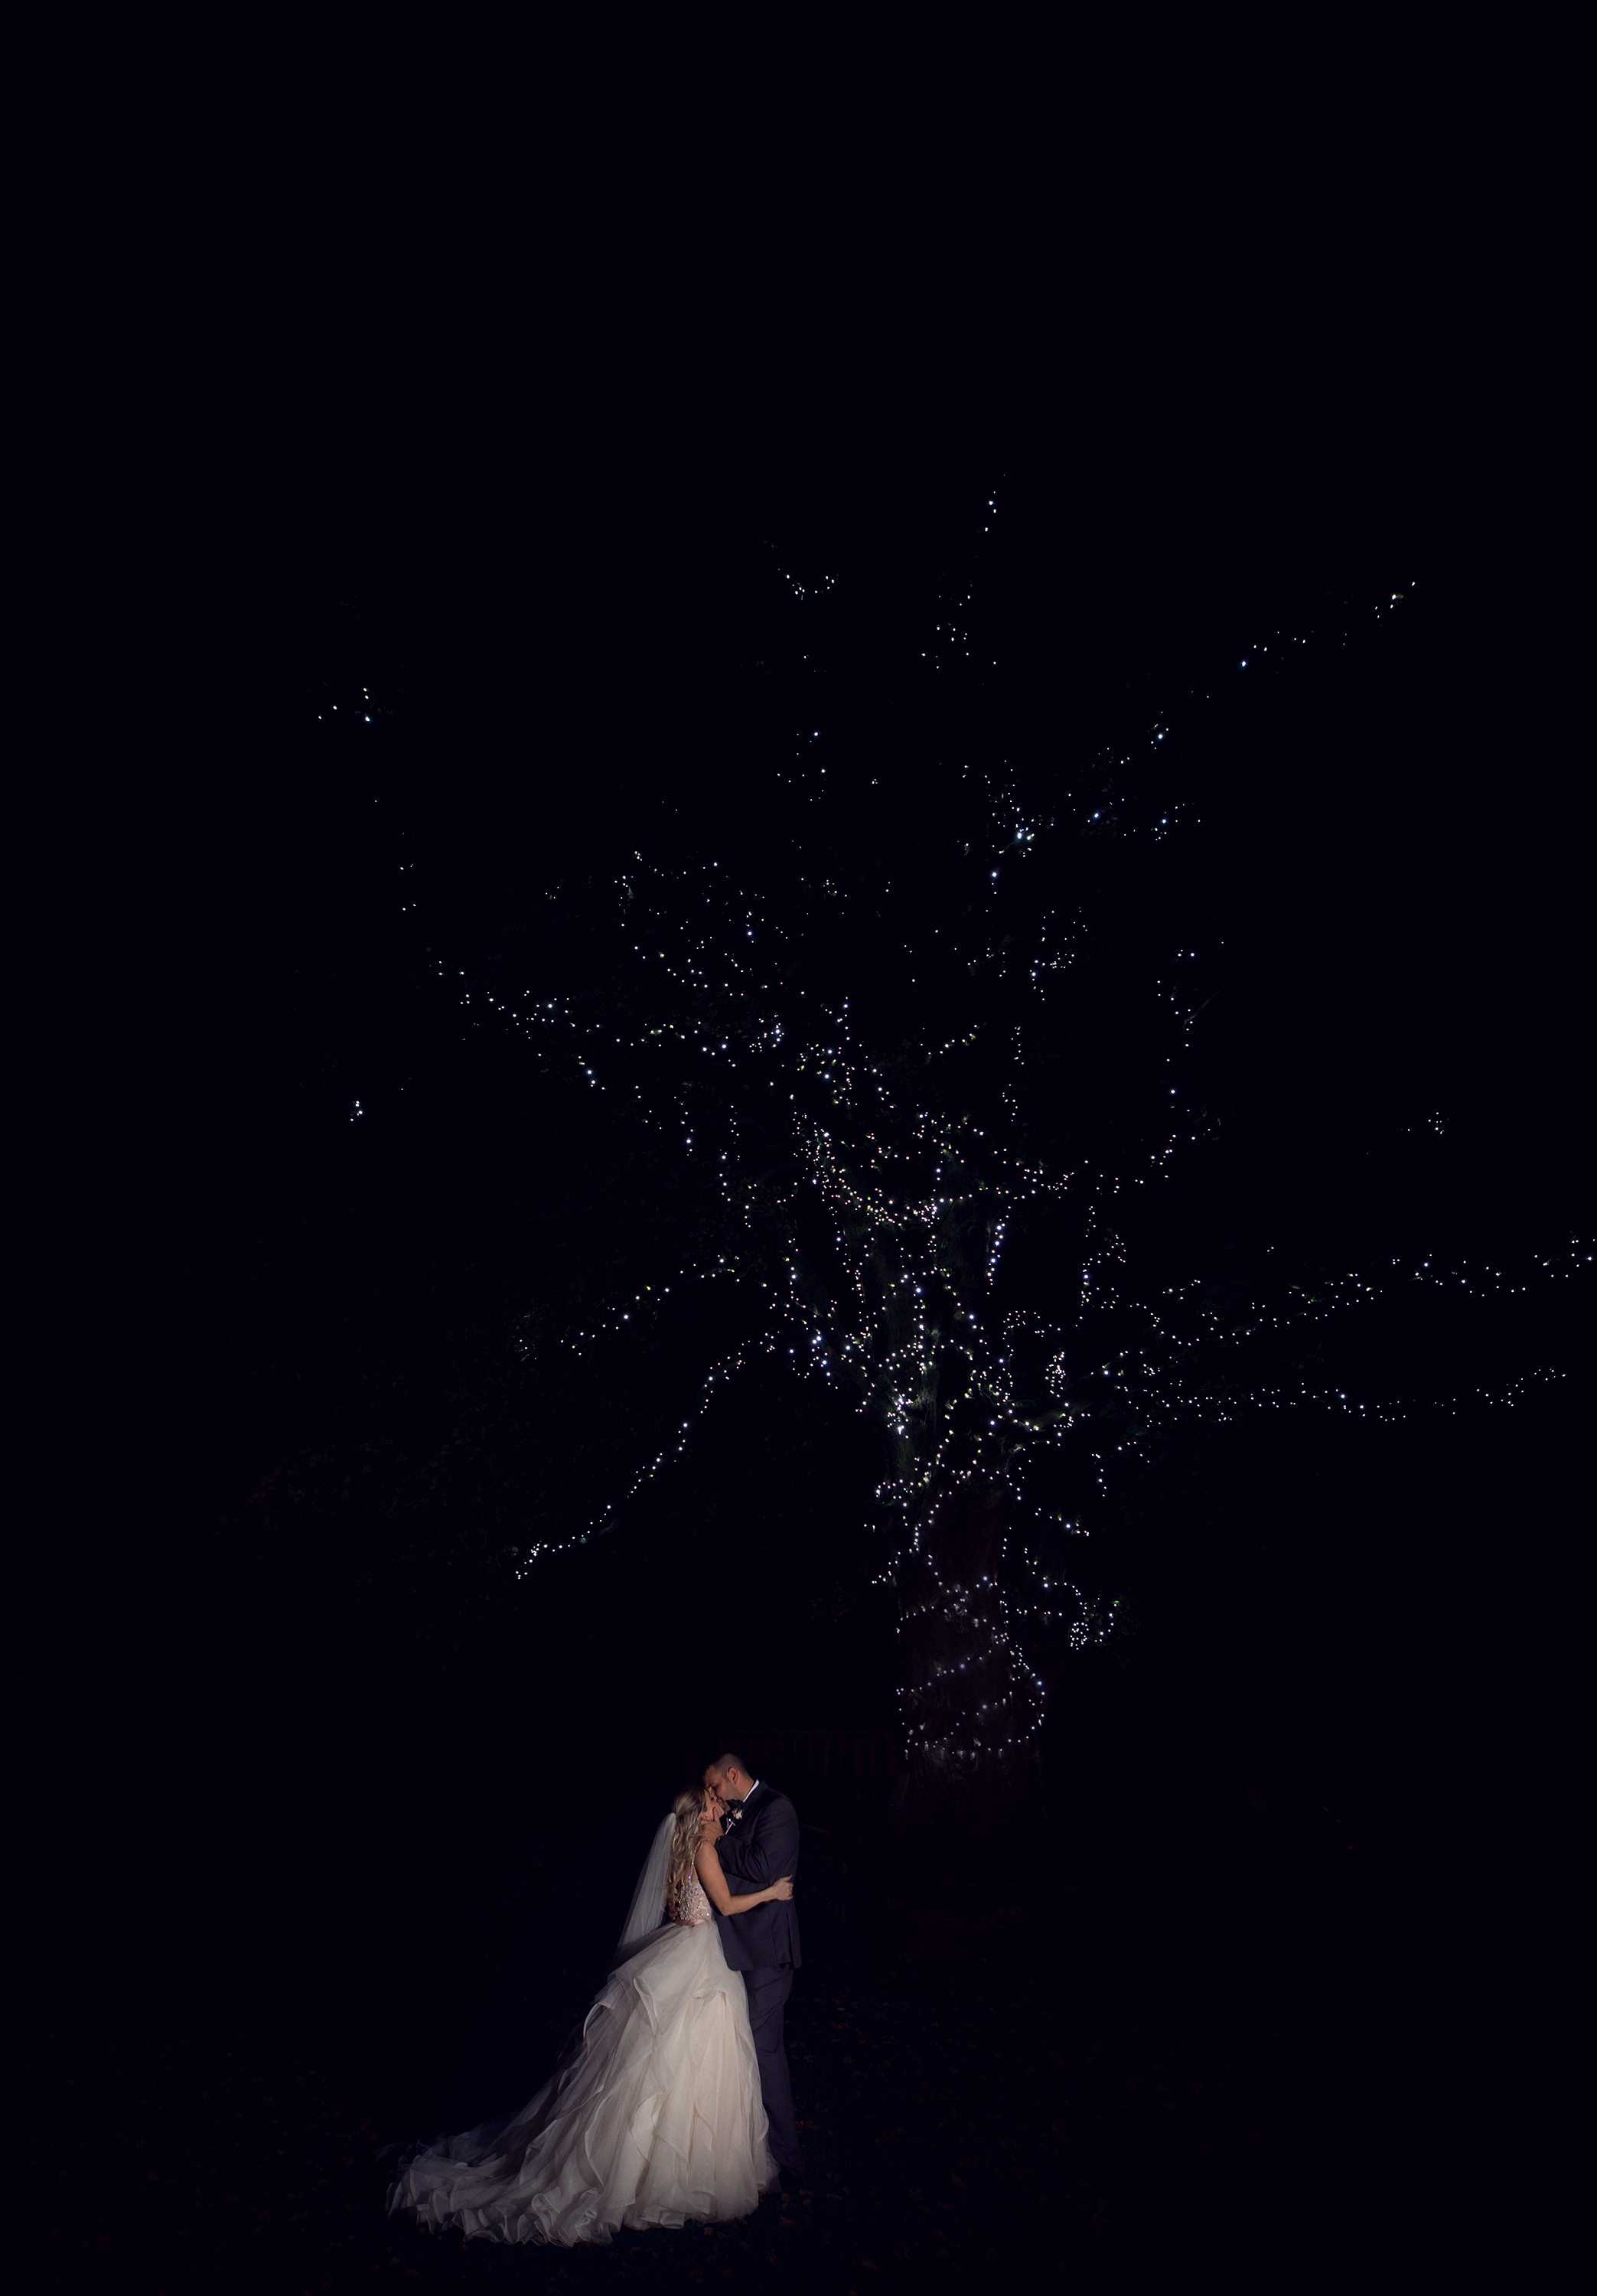 Night time shot of the Bride and Groom under the illuminated tree at Stirk House Hotel